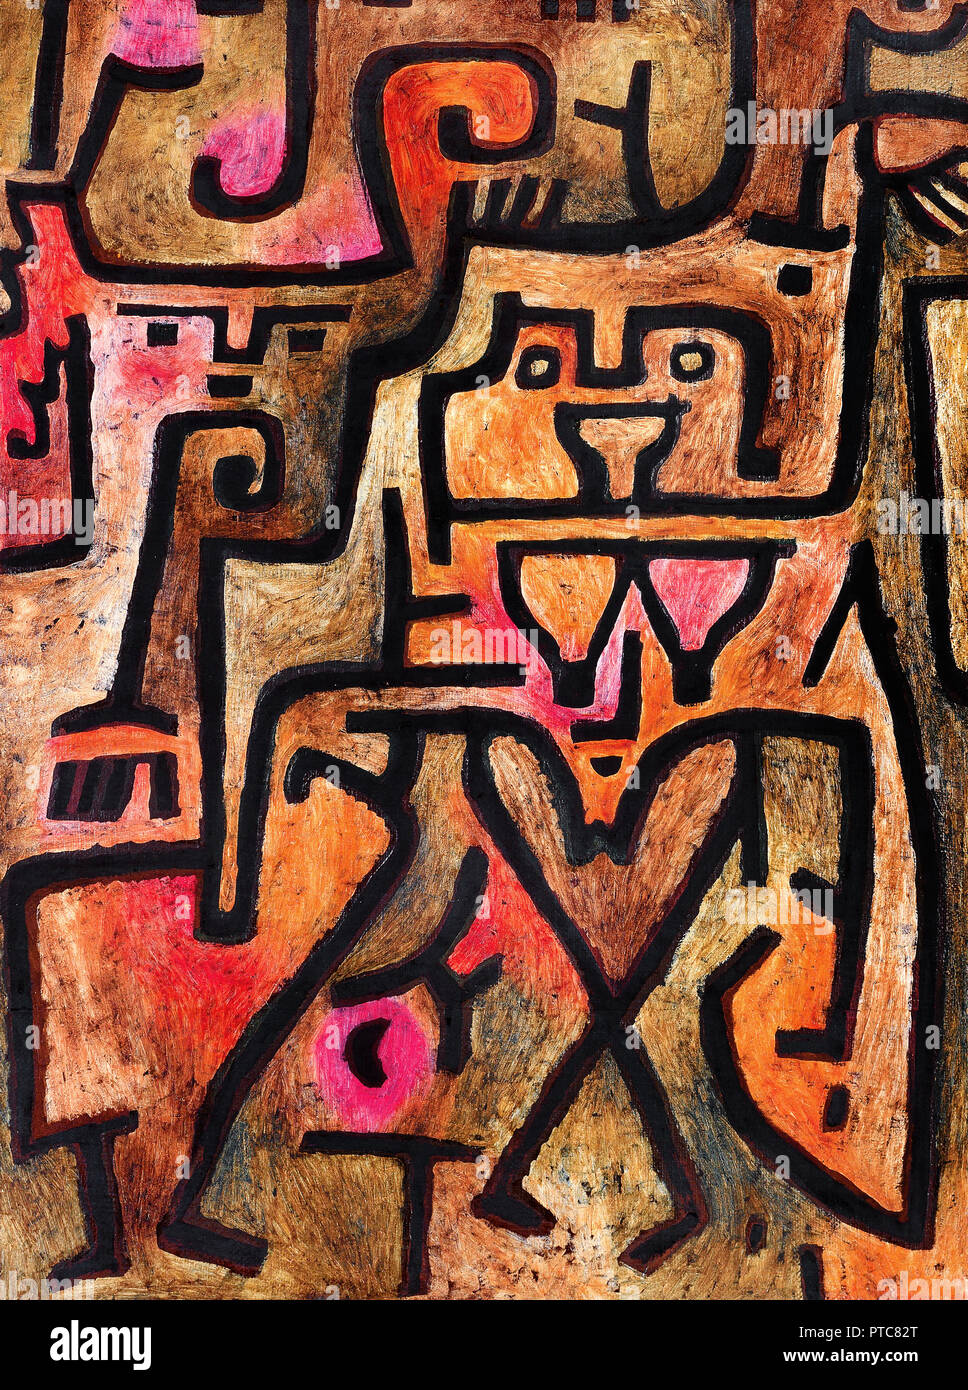 Paul Klee, Forest Witches 1938 Oil on canvas, Beyeler Foundation, Riehen, Switzerland. - Stock Image